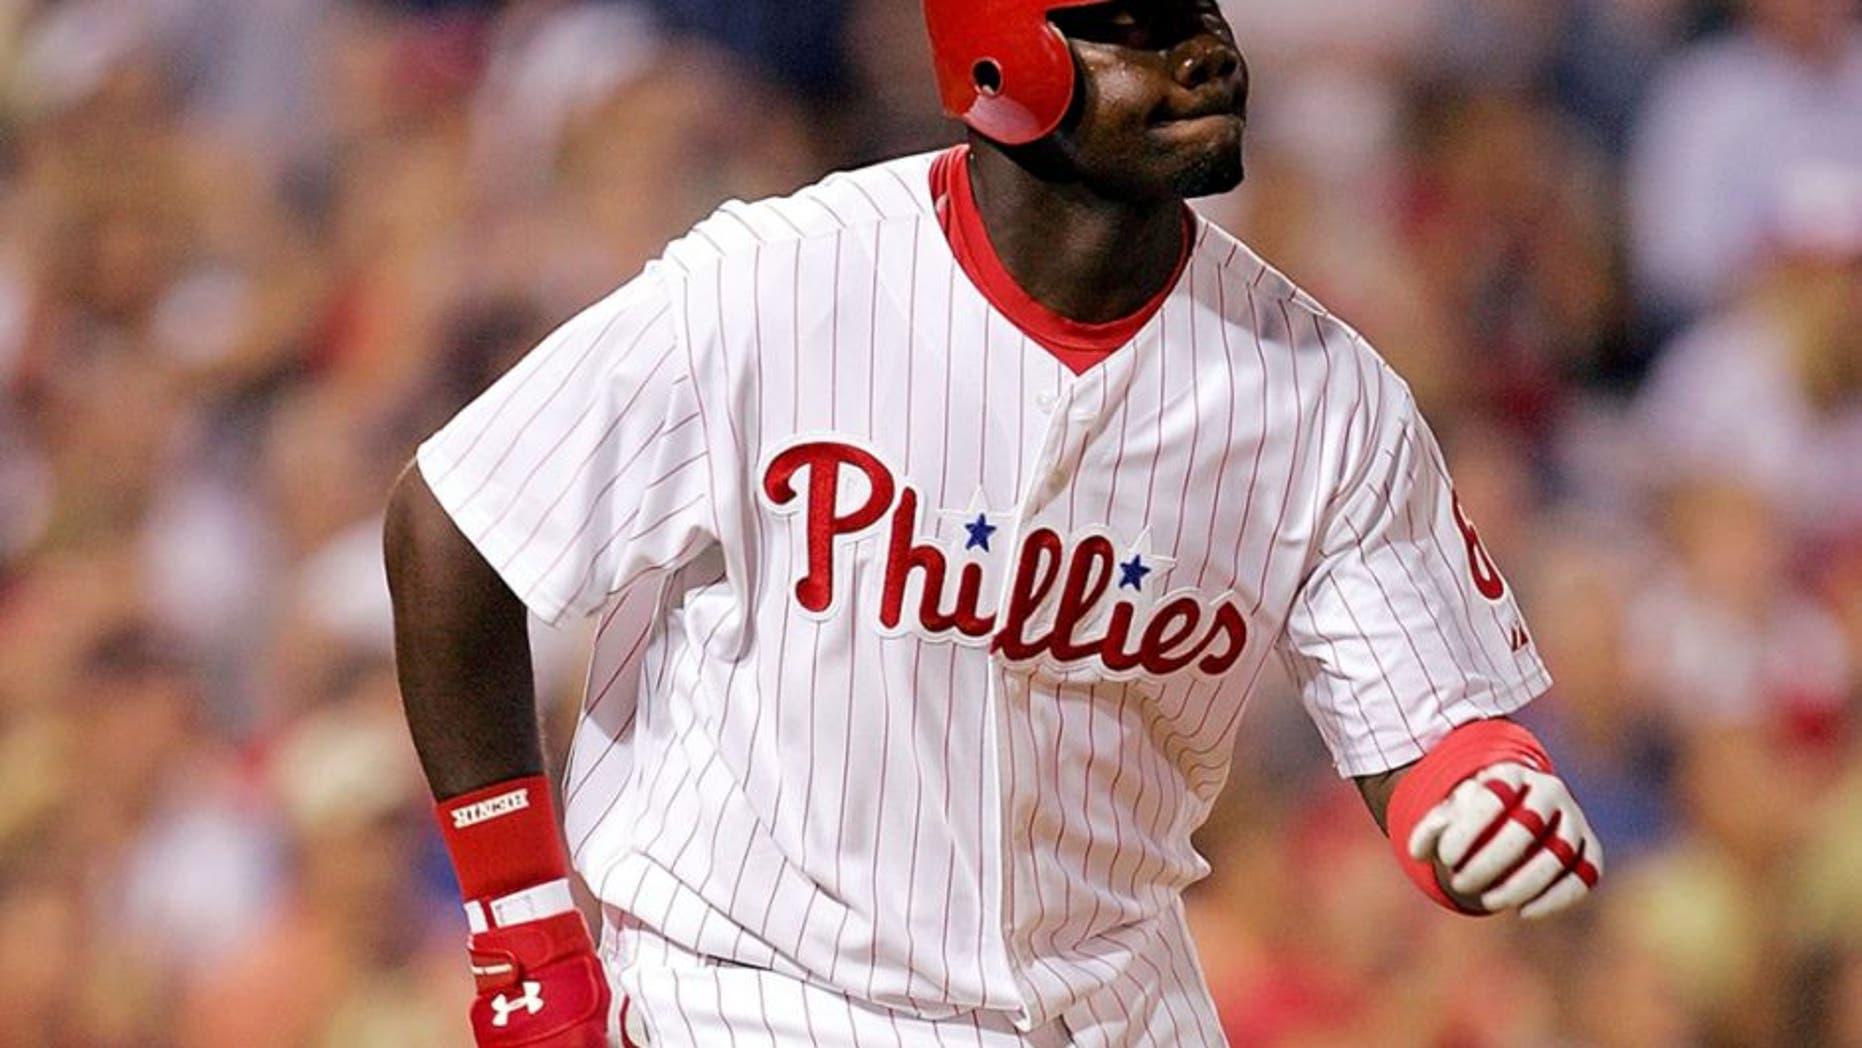 PHILADELPHIA - SEPTEMBER 13: Ryan Howard #6 of the Philadelphia Phillies rounds the bases after hitting a solo home run against the Atlanta Braves during the first inning on September 13, 2005 at Citizens Bank Park in Philadelphia, Pennsylvania. (Photo by Jamie Squire/Getty Images)